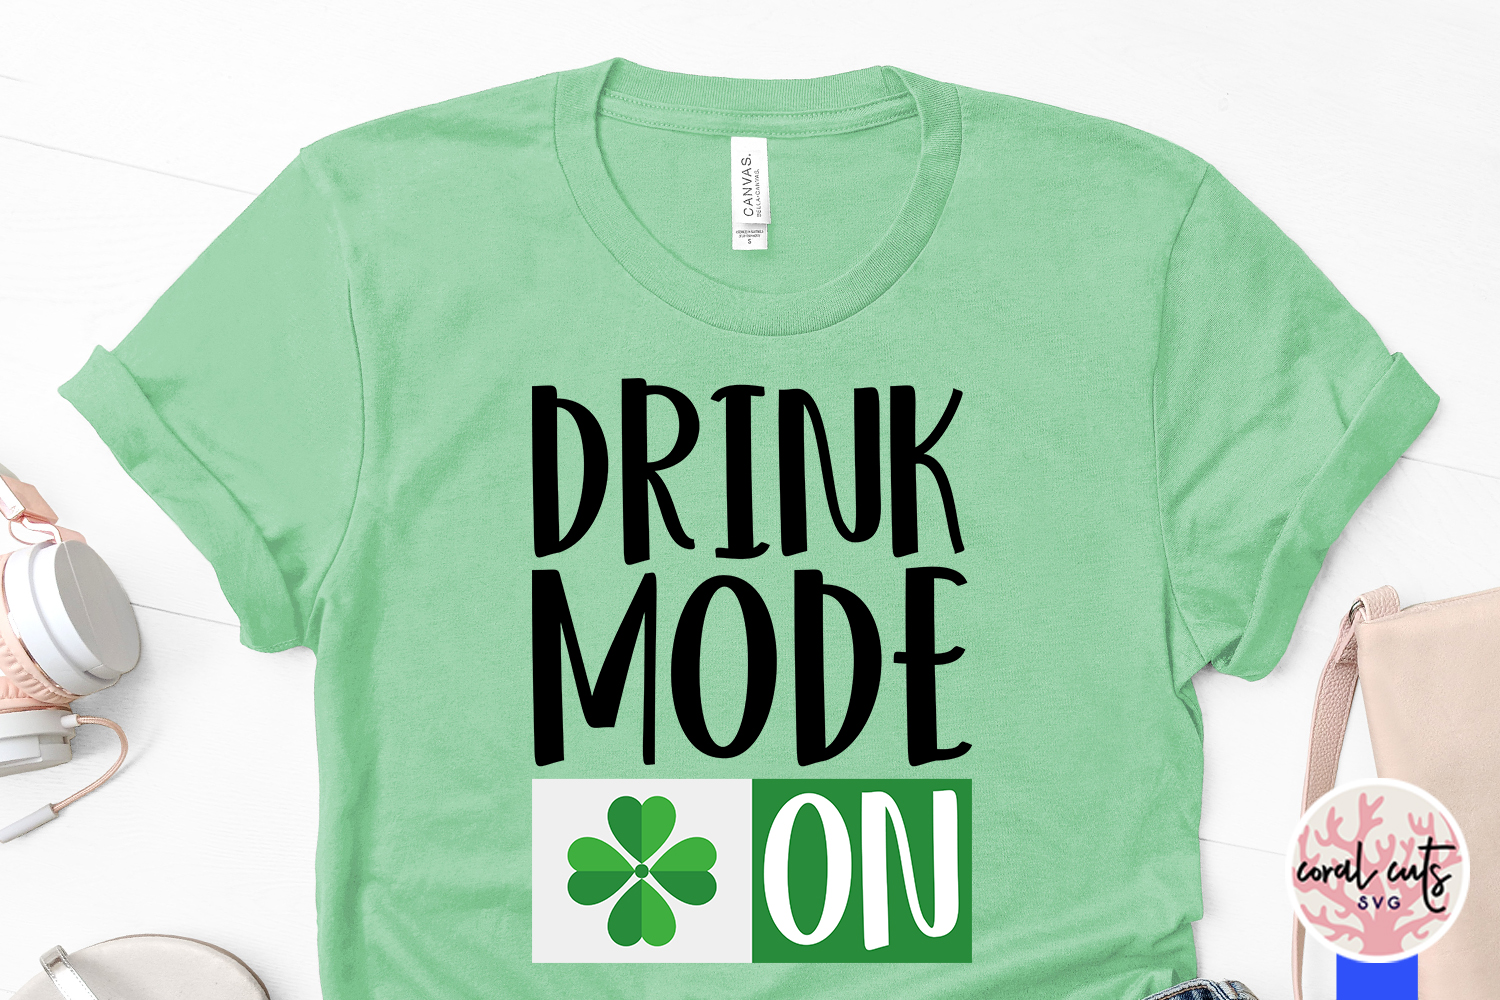 Drunk mode on - St. Patrick's Day SVG EPS DXF PNG example image 3